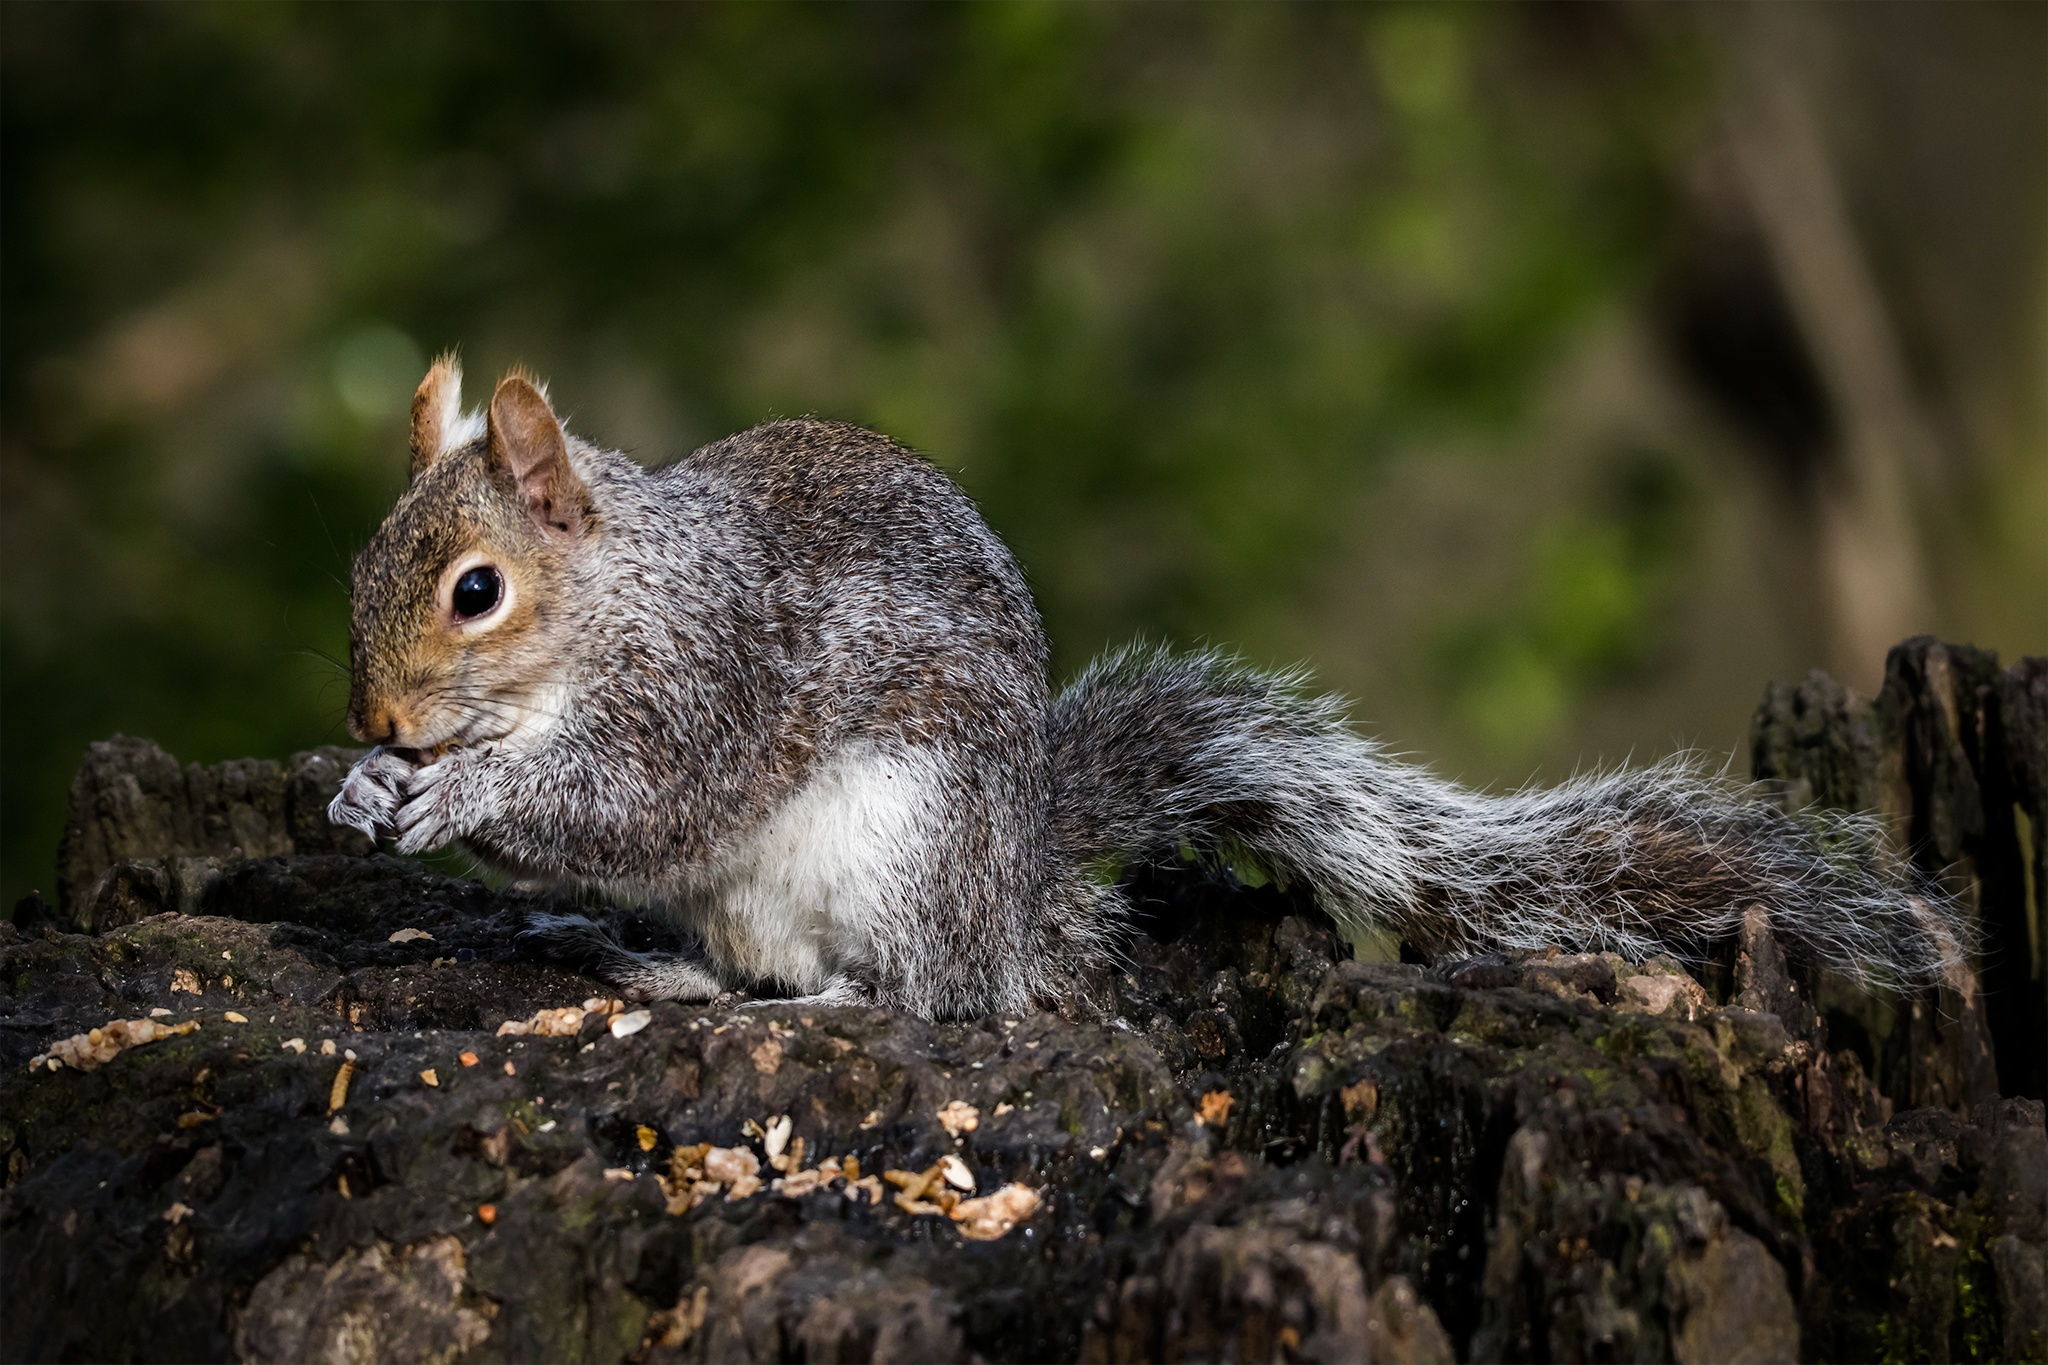 Going Nuts 2! by Guy Dunn